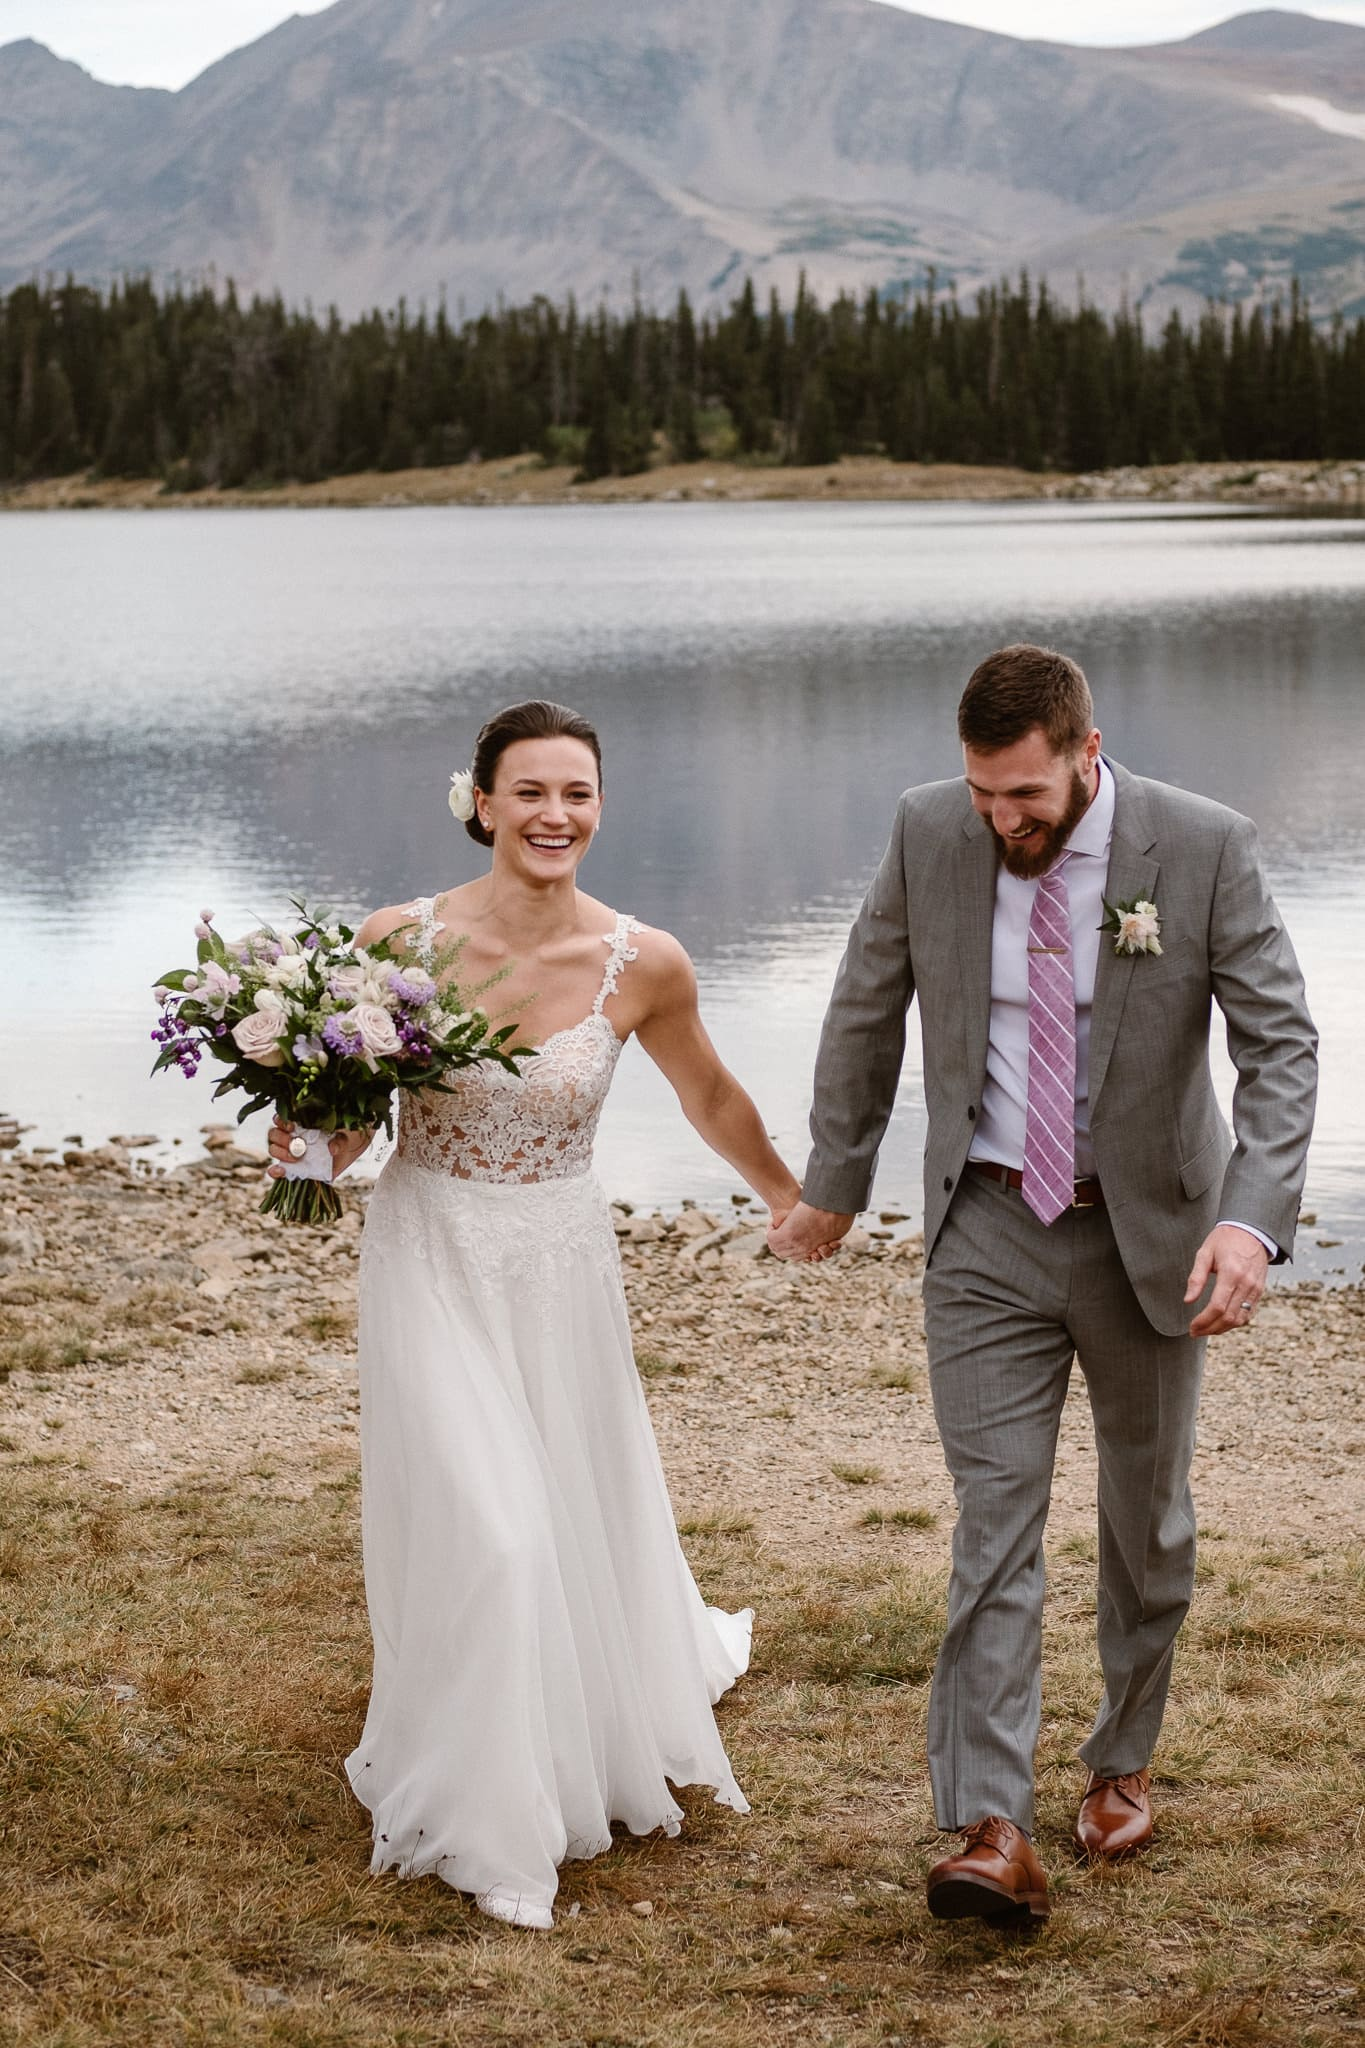 Colorado mountain elopement photographer, alpine lake adventure wedding, Boulder wedding photographer, outdoor ceremony, recessional